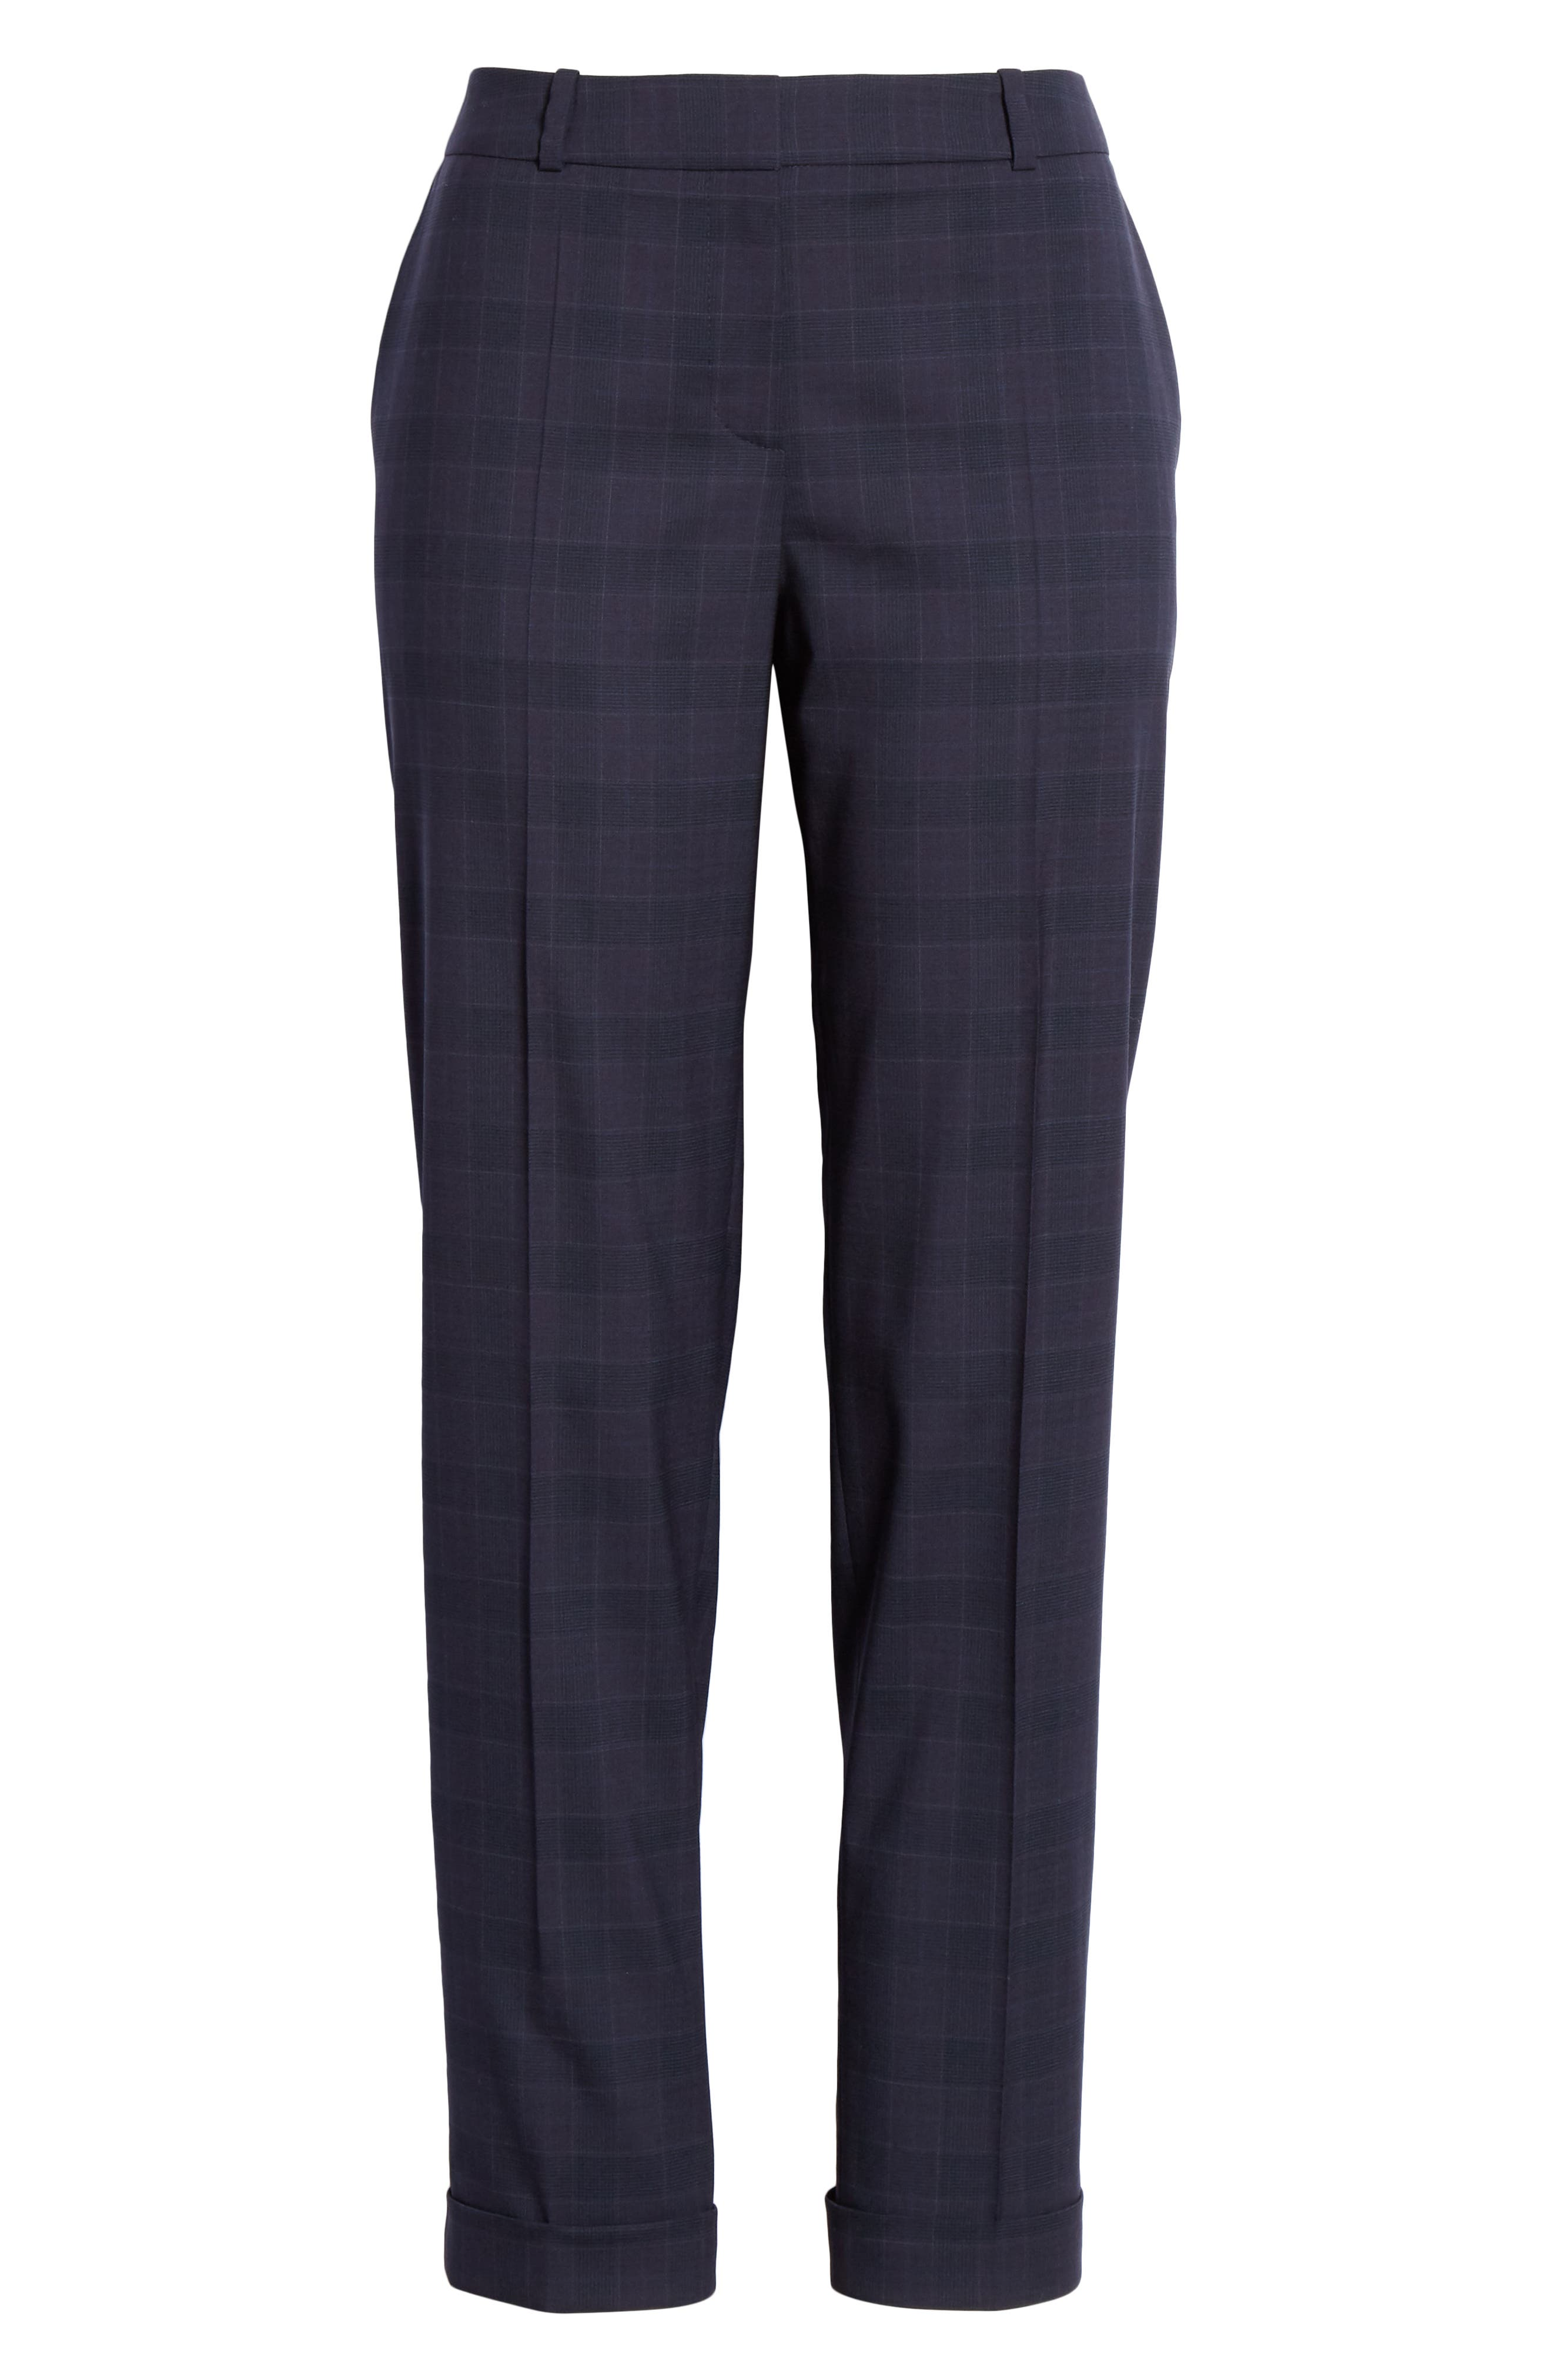 Tocanes Modern Check Wool Ankle Trousers,                             Alternate thumbnail 7, color,                             DARK NAVY FANTASY